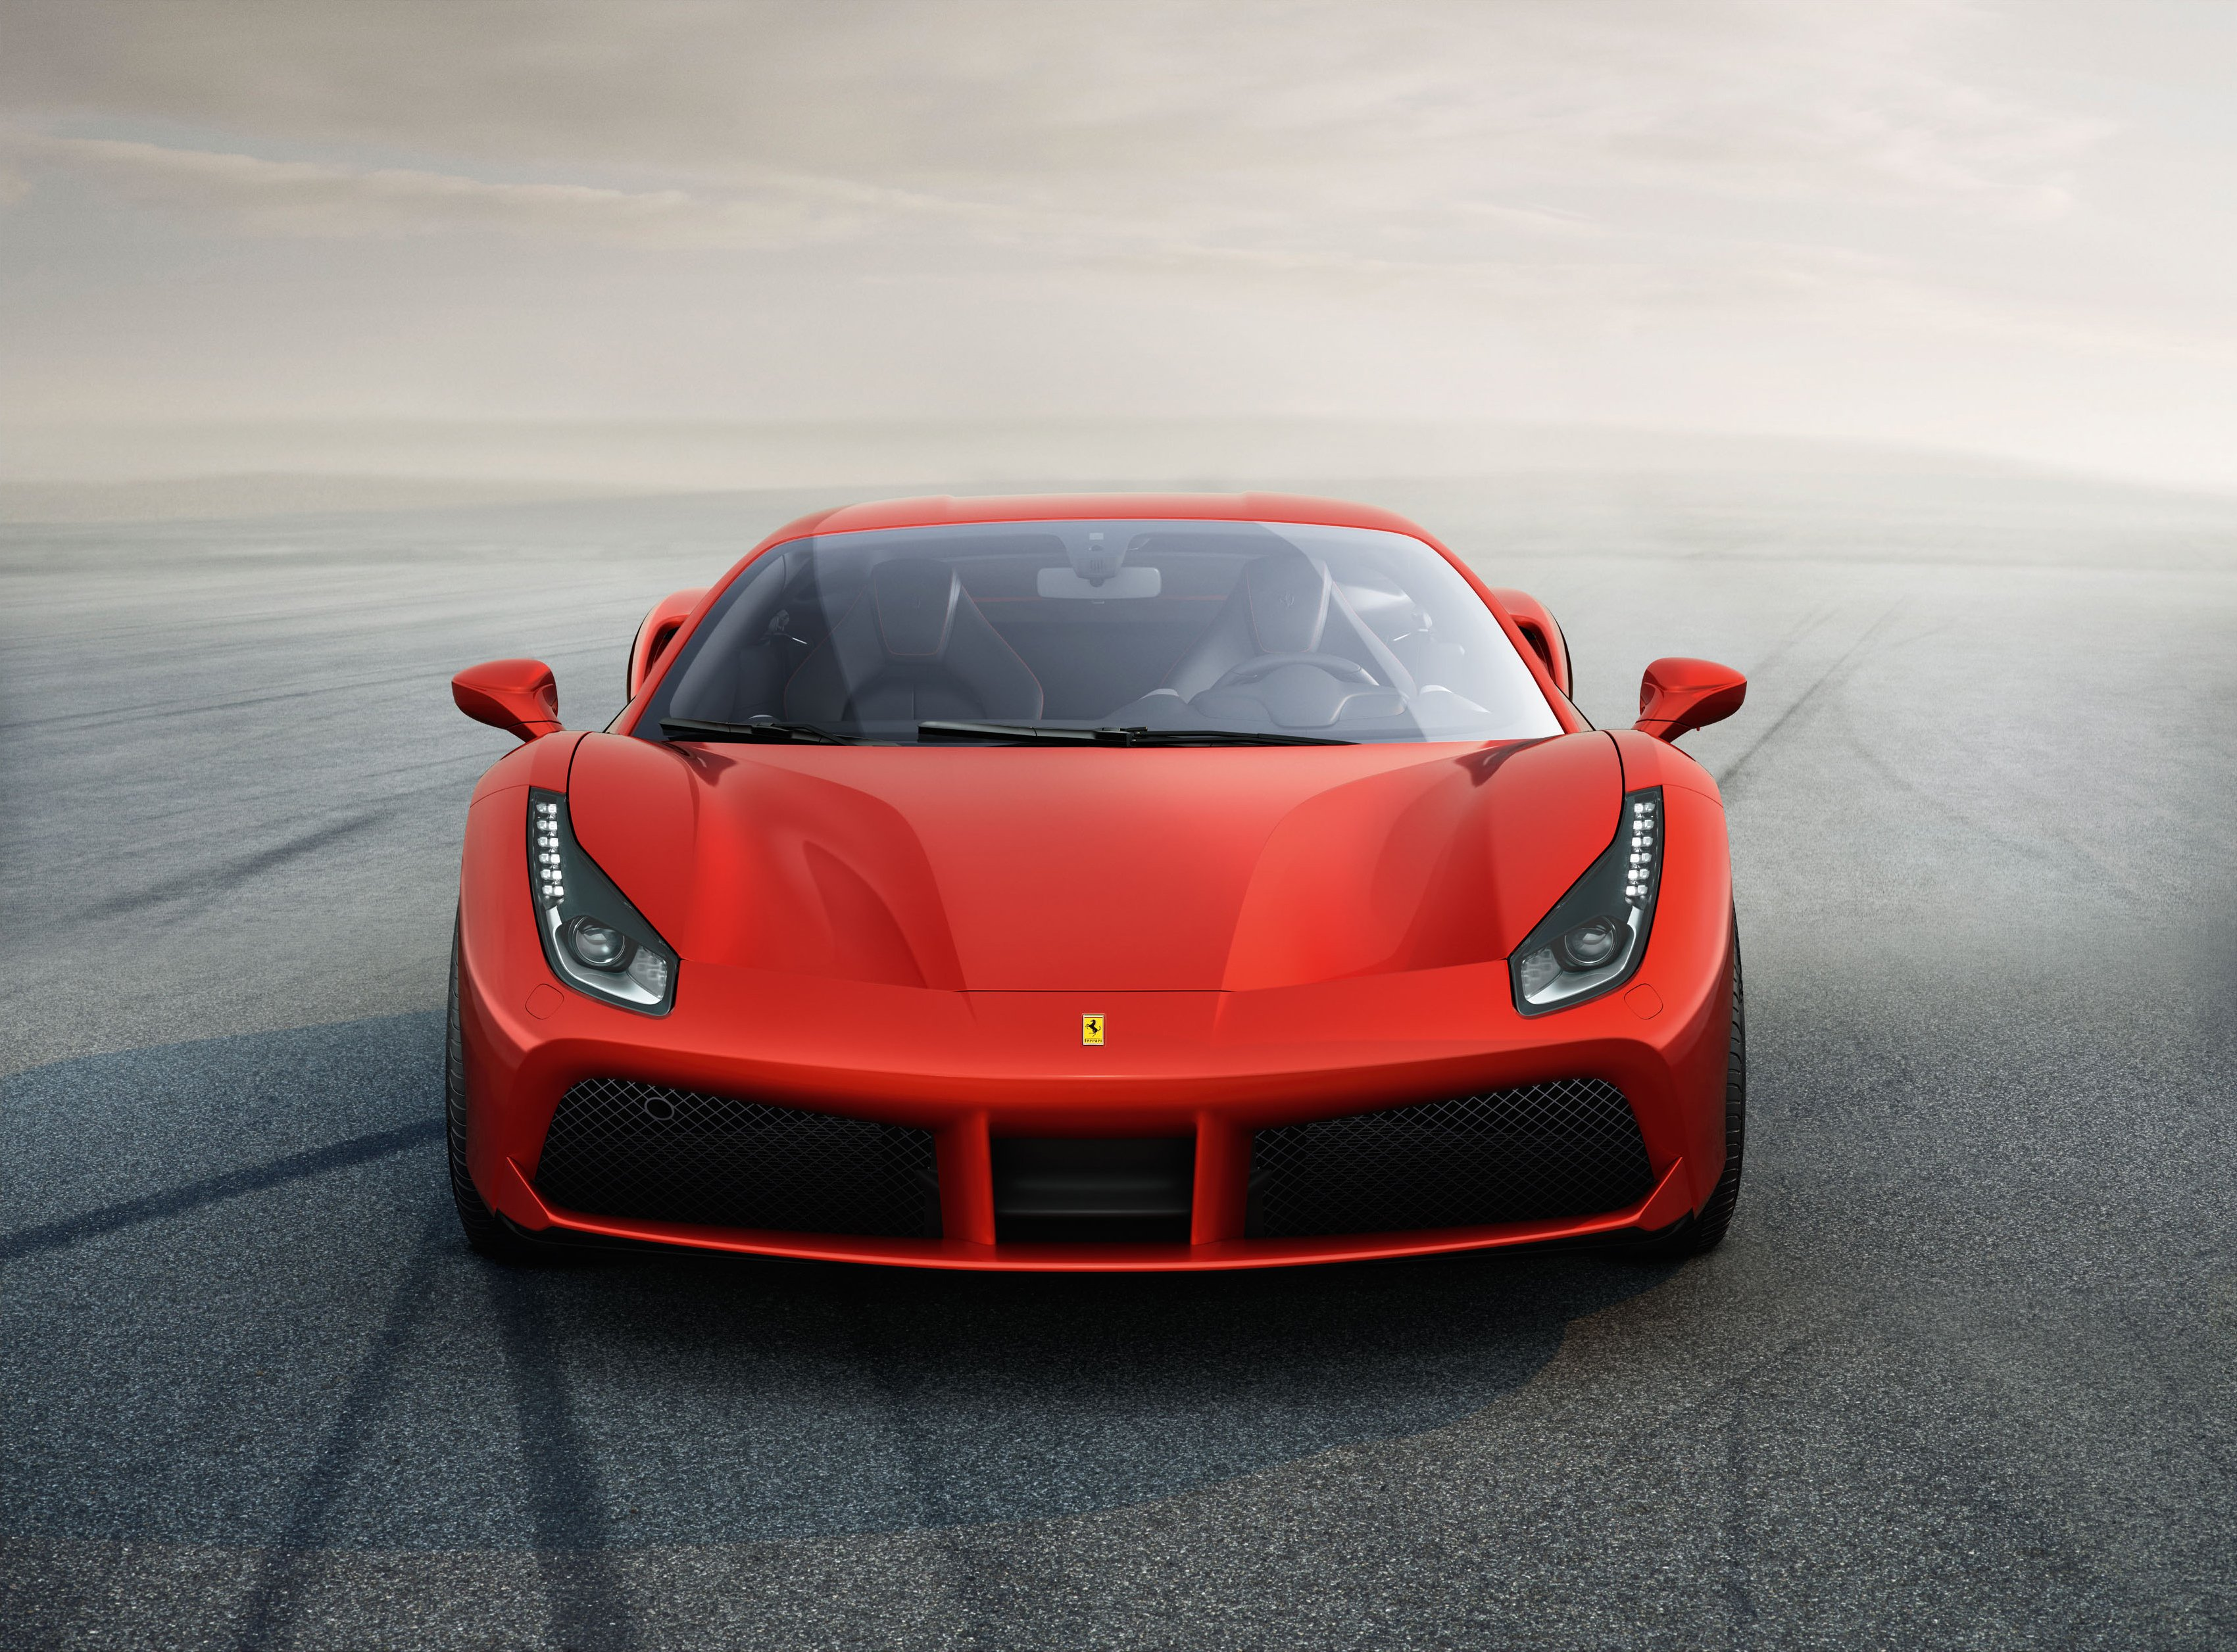 2015 ferrari 488 gtb supercar wallpaper 3401x2512 622448 wallpaperup - Ferrari 488 Iphone Wallpaper